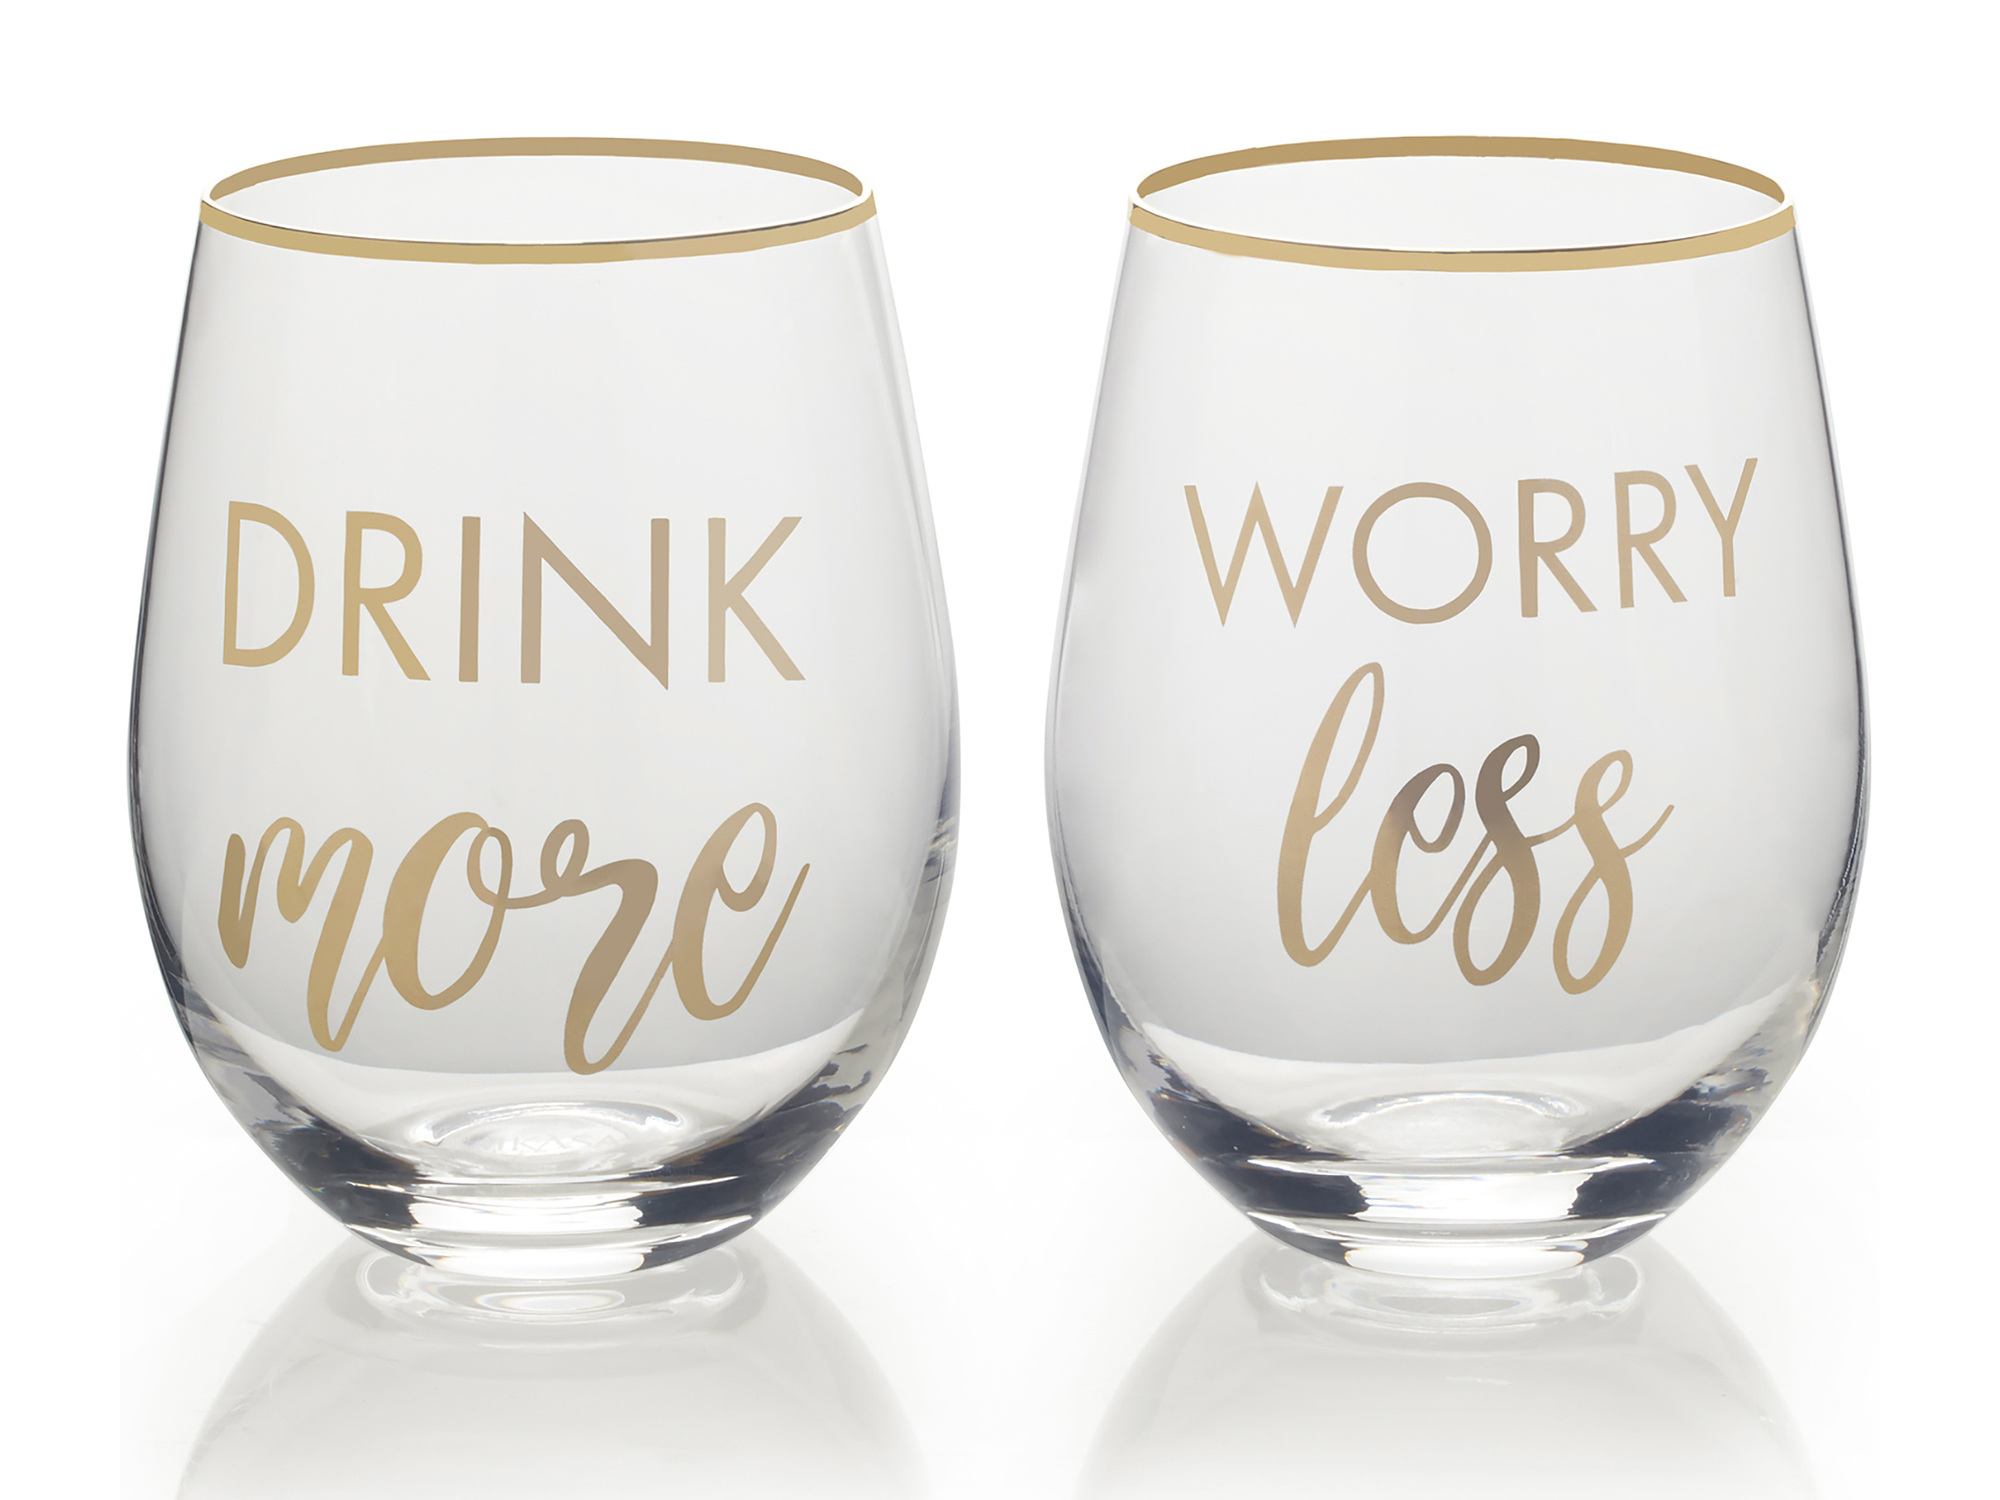 Mikasa Cheers Set Of 2 Stemless Drink More And Worry Less Wine Glasses